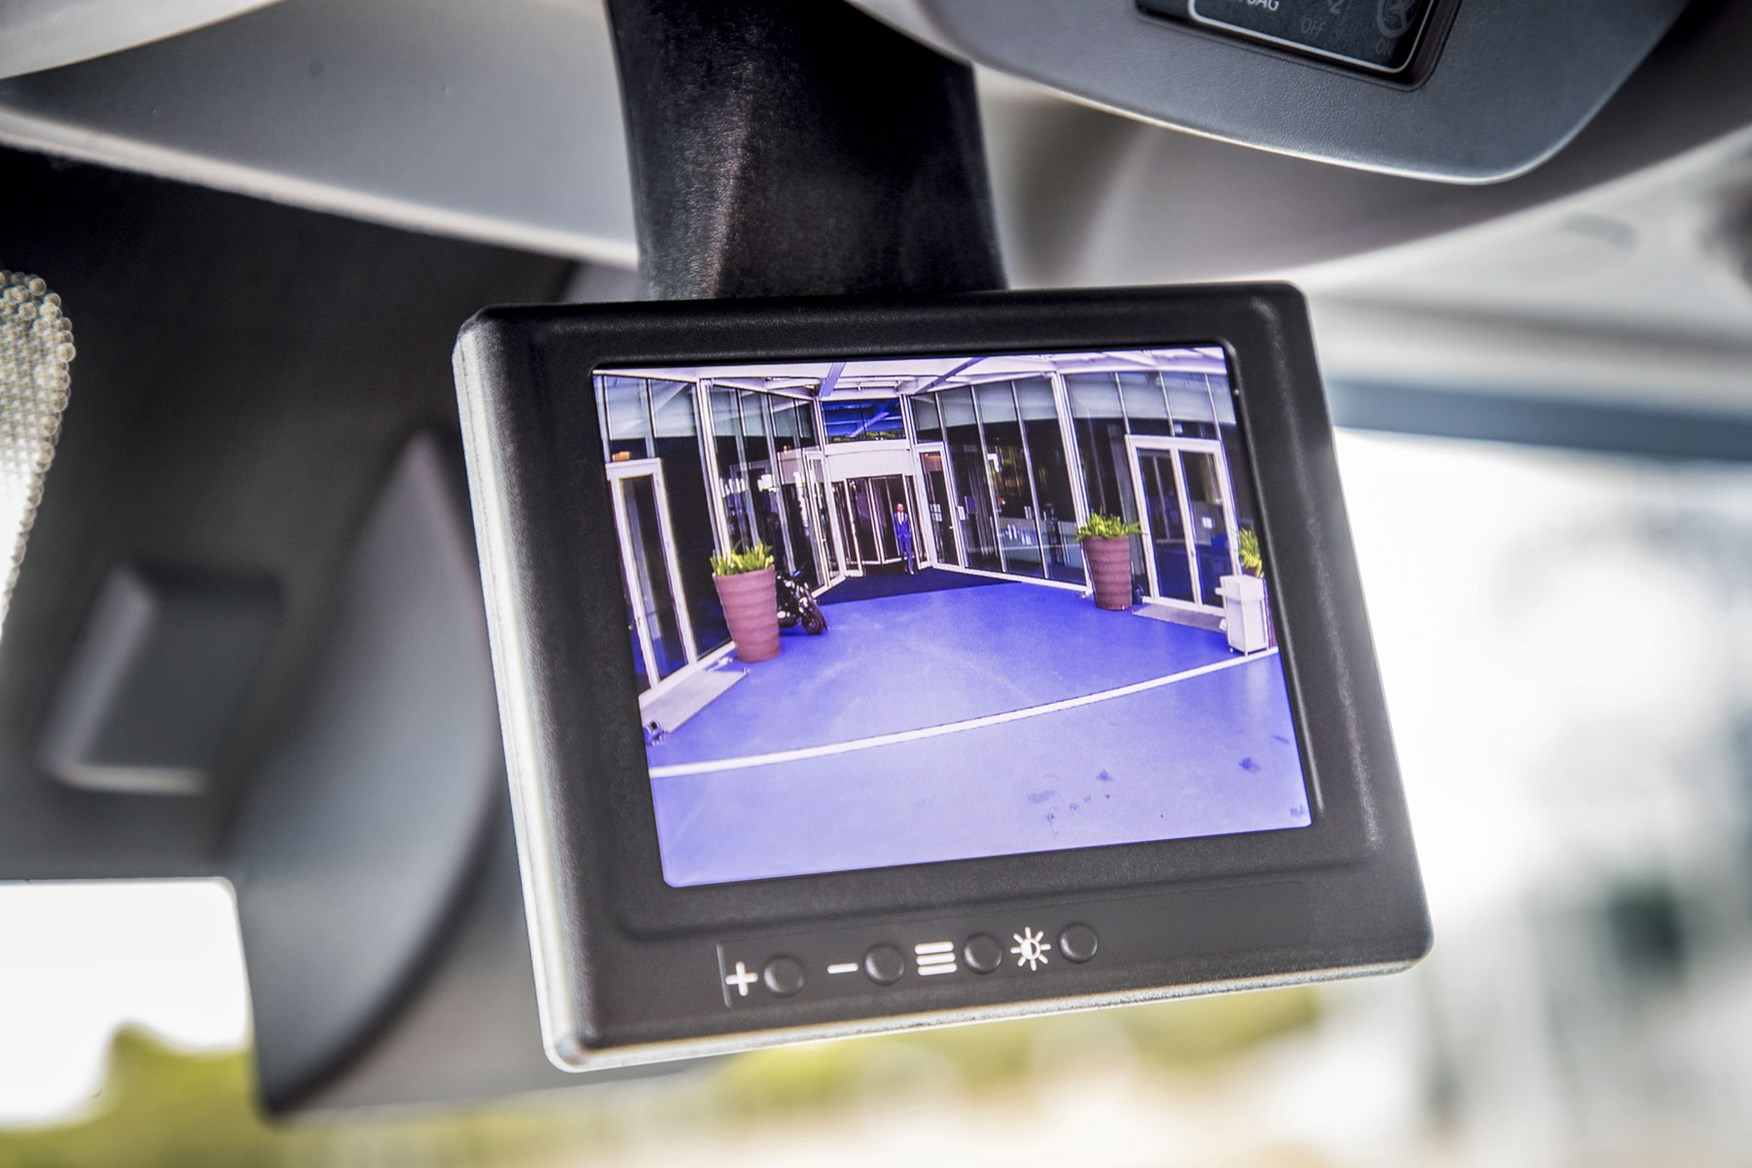 Renault Master review - 2019 facelift cab interior, showing rear view camera system